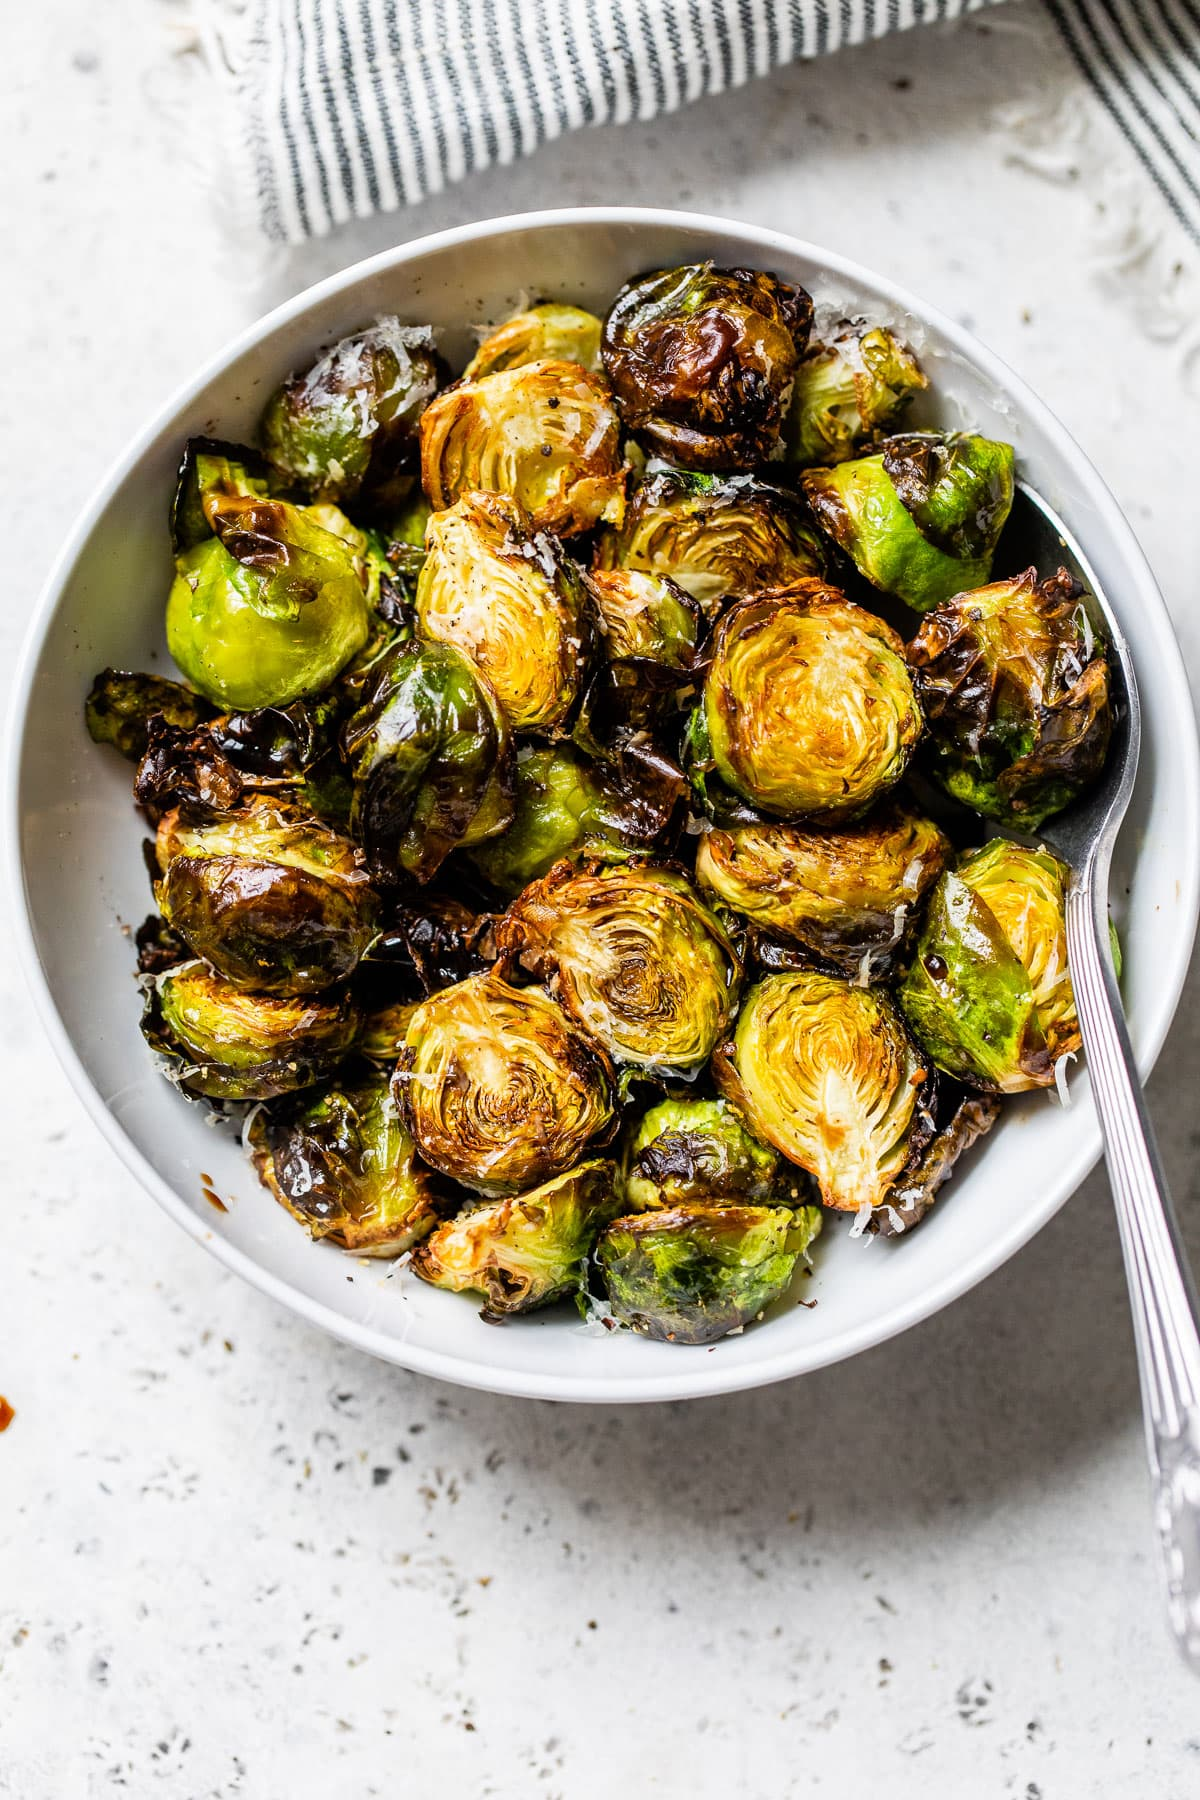 Brussels sprouts in a bowl with a spoon